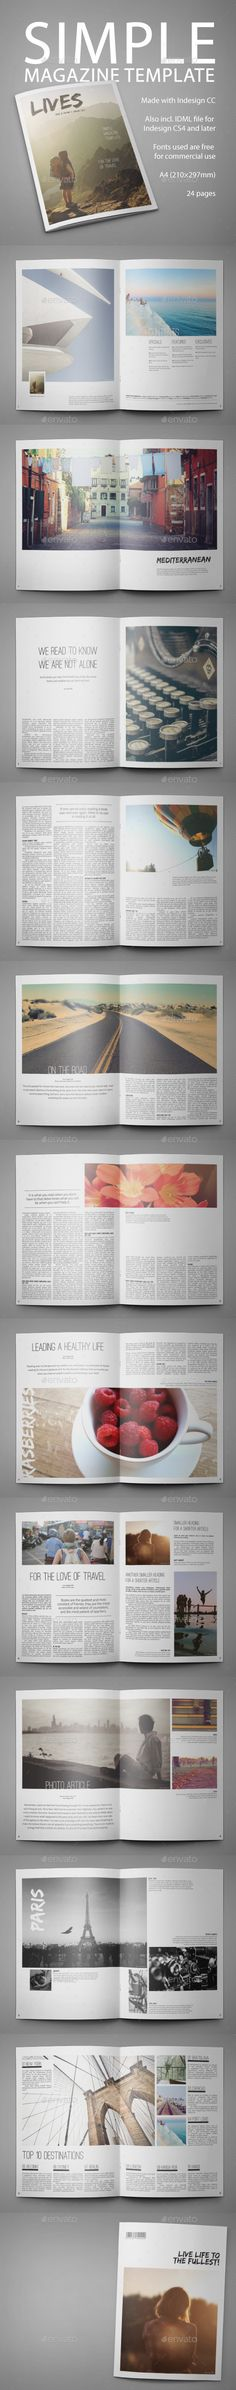 Simple Multipurpose Magazine Template | #magazinetemplate | Download: http://graphicriver.net/item/simple-multipurpose-magazine-template/10007527?ref=ksioks